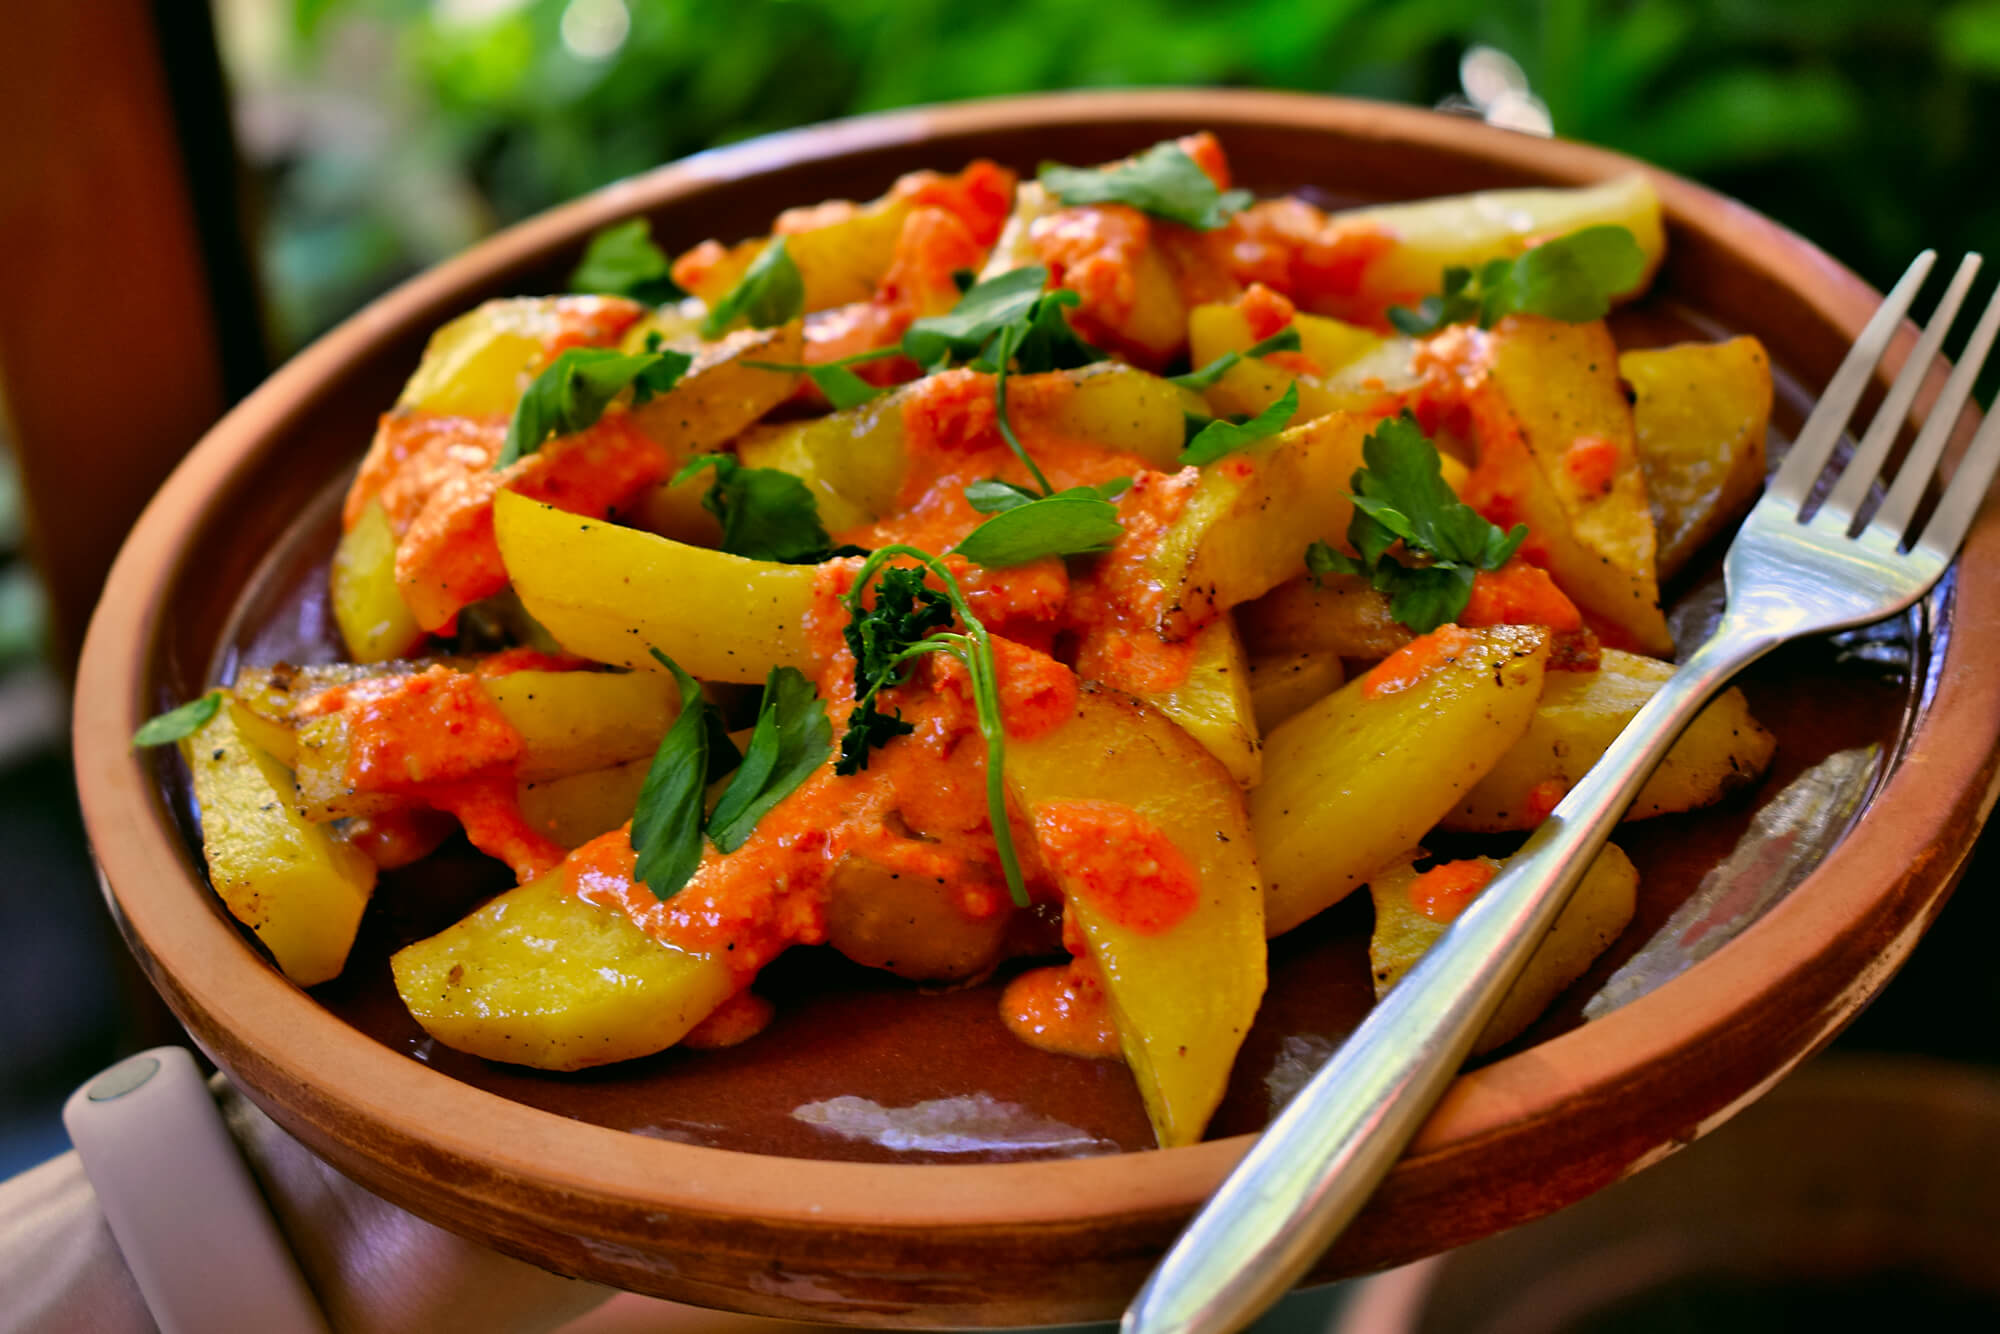 Baked Potato Wedges with Harissa Sauce